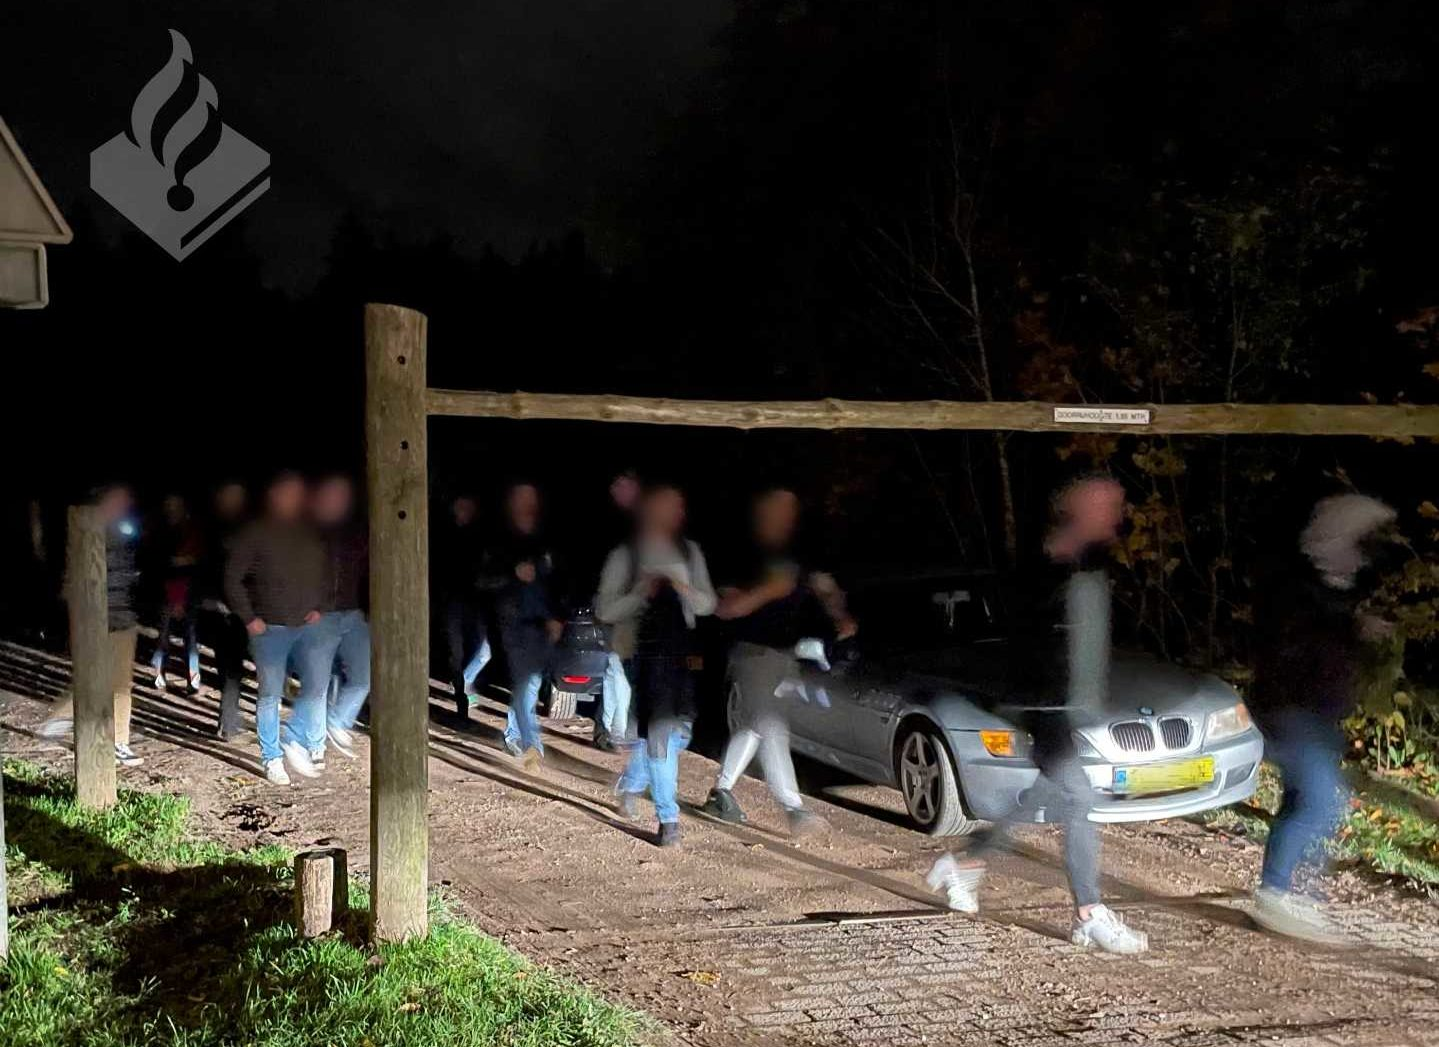 Police break up parties as 300 gather for rave on Hilversum building site